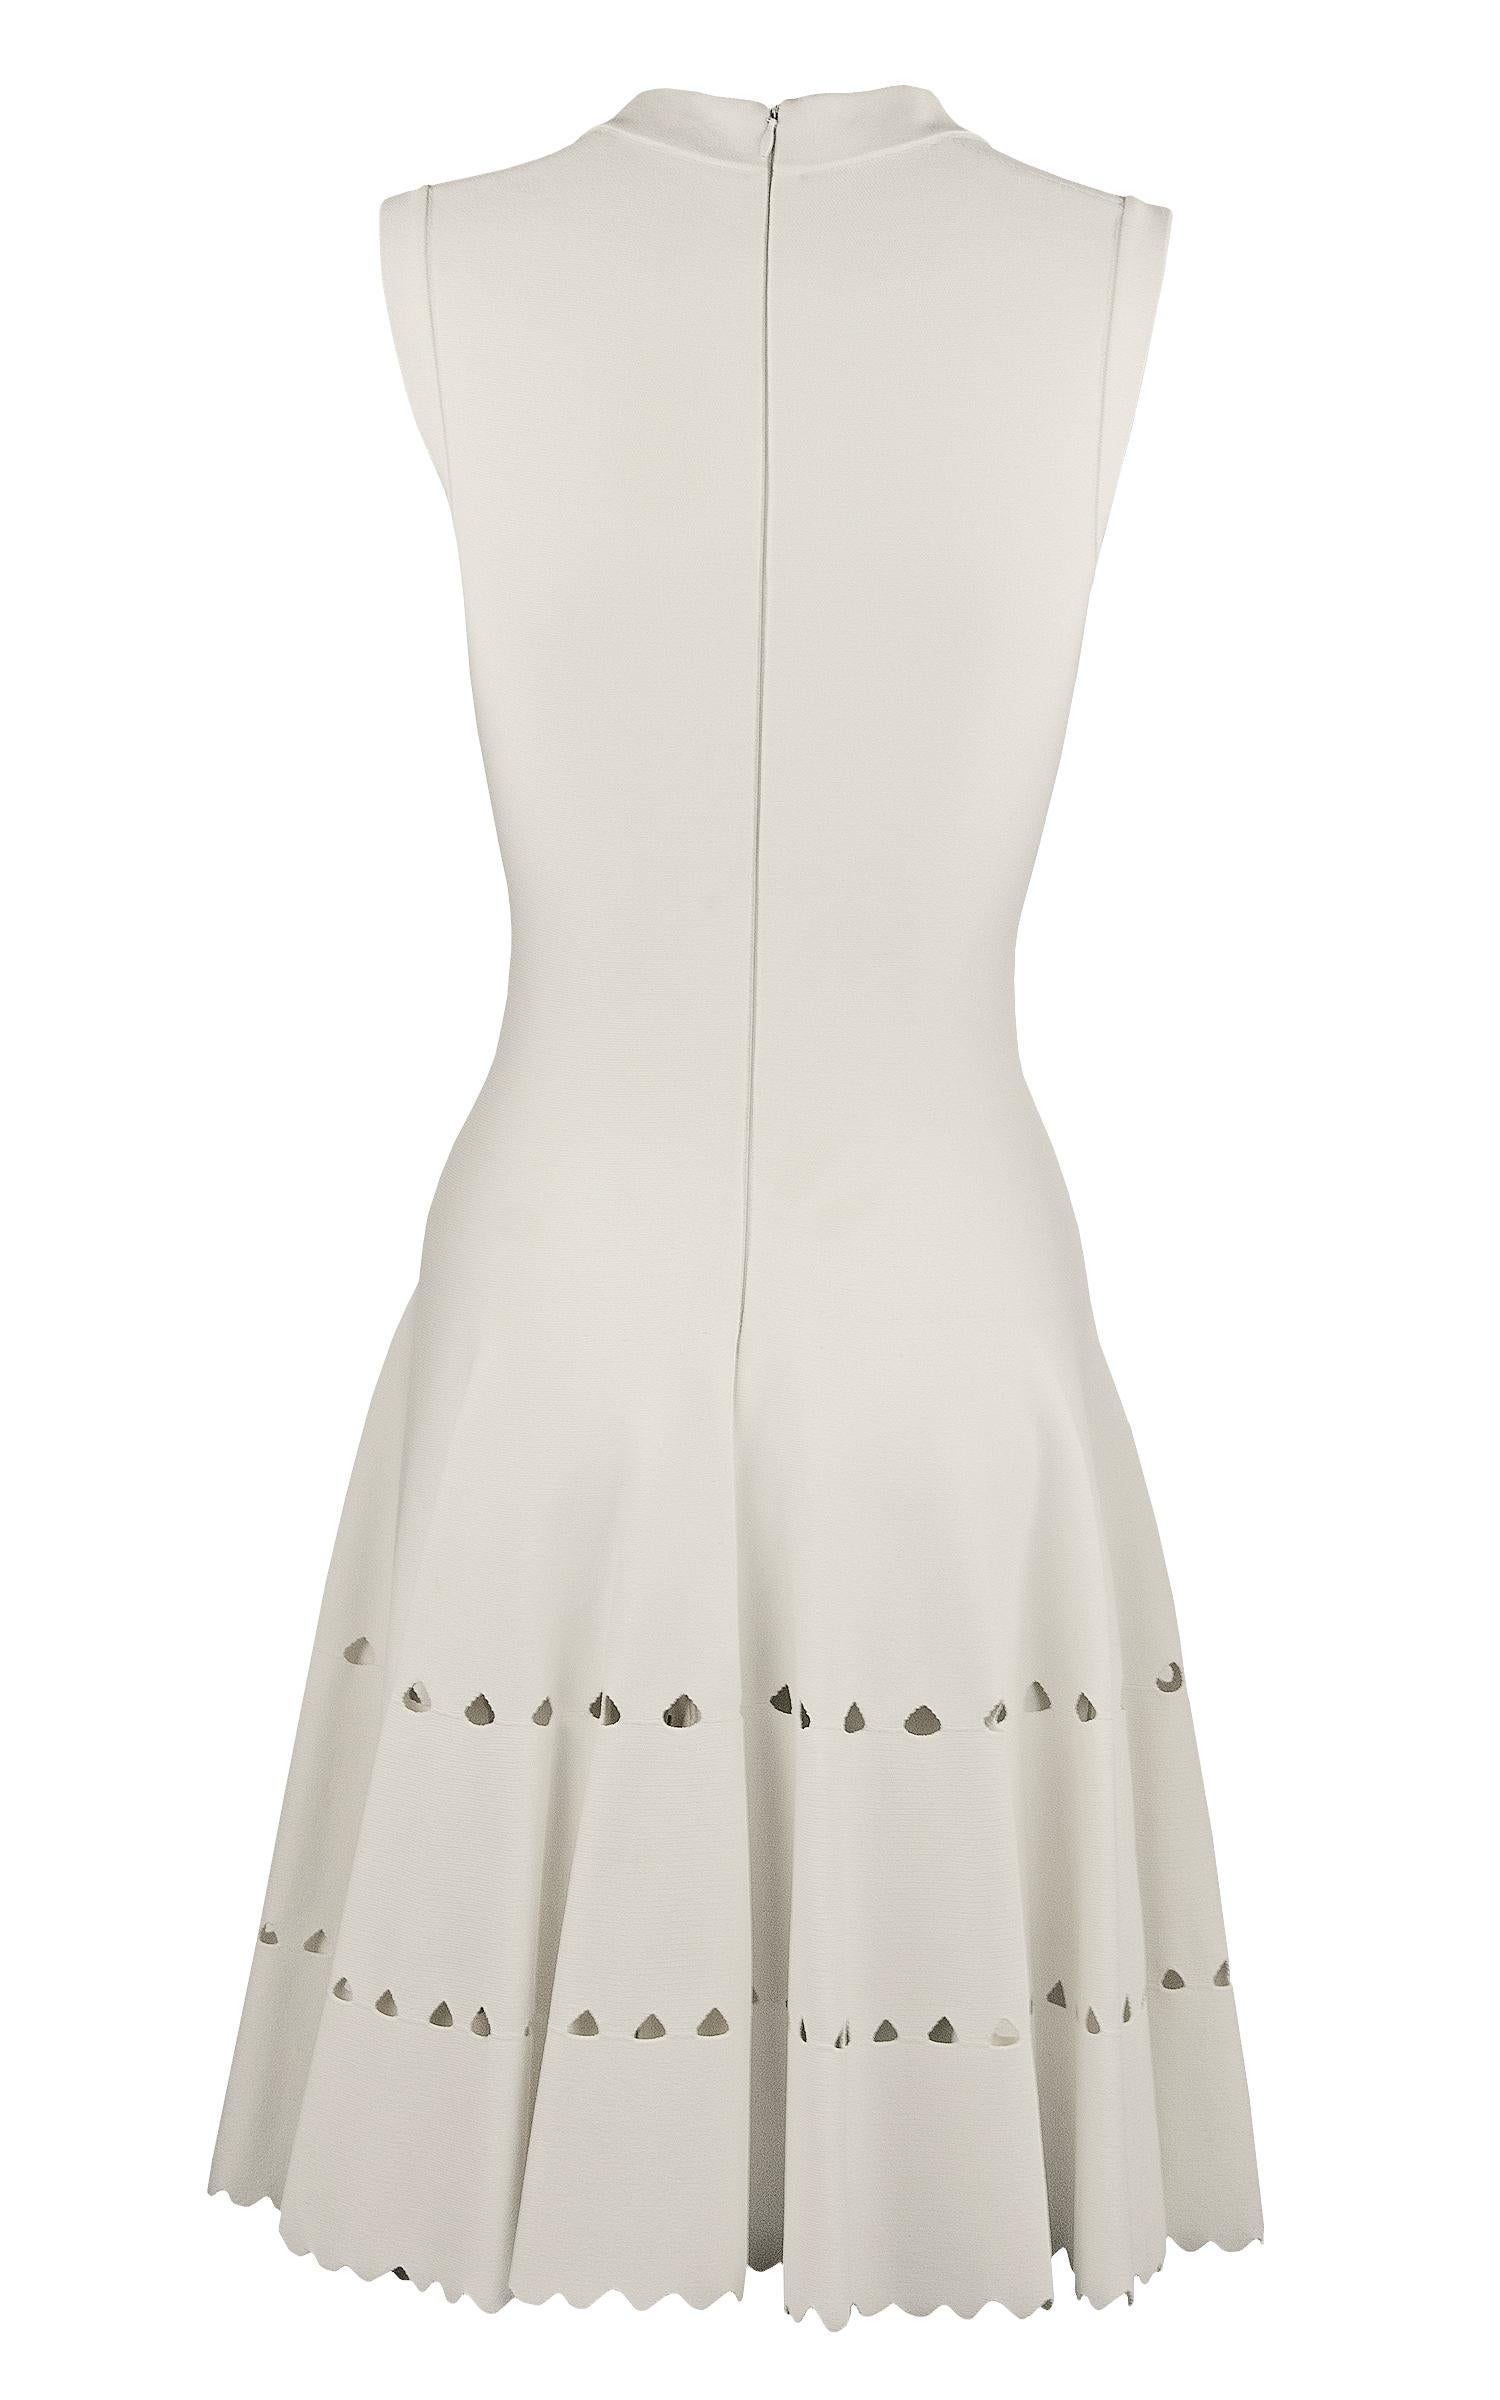 e99b46b0527 Alaia White Laser Cut Fit and Flare Dress - Size FR 36 For Sale at 1stdibs